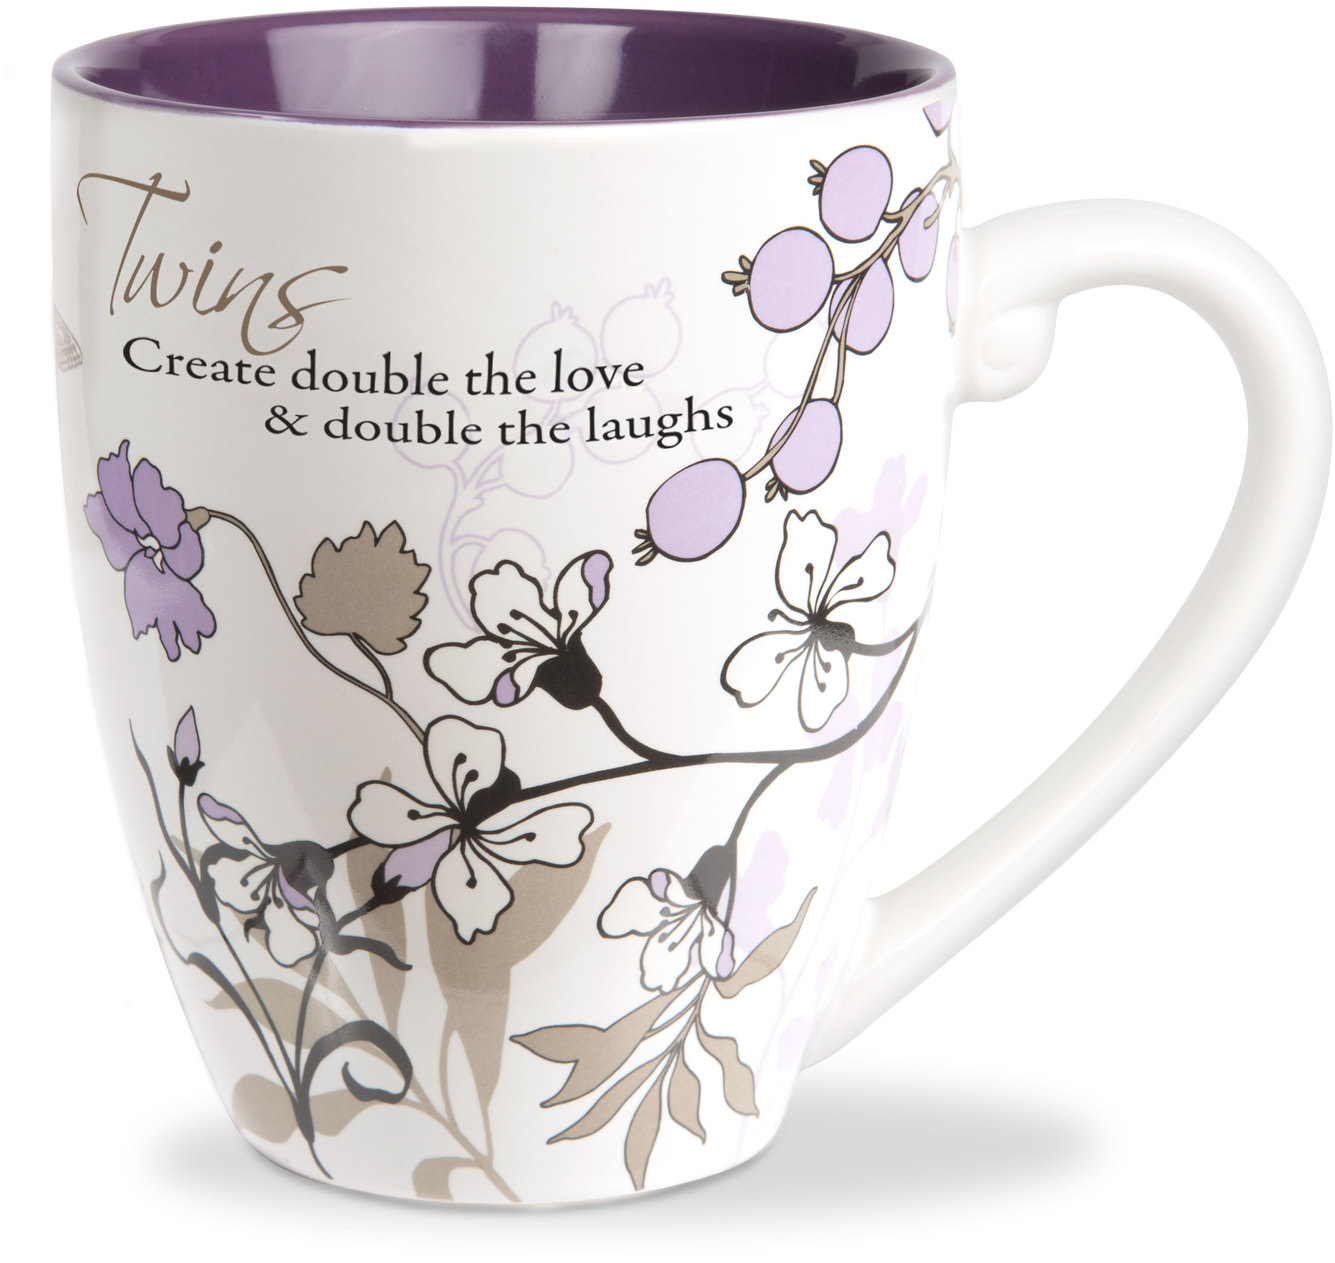 Twins by Mark My Words - Twins - 20 oz Cup